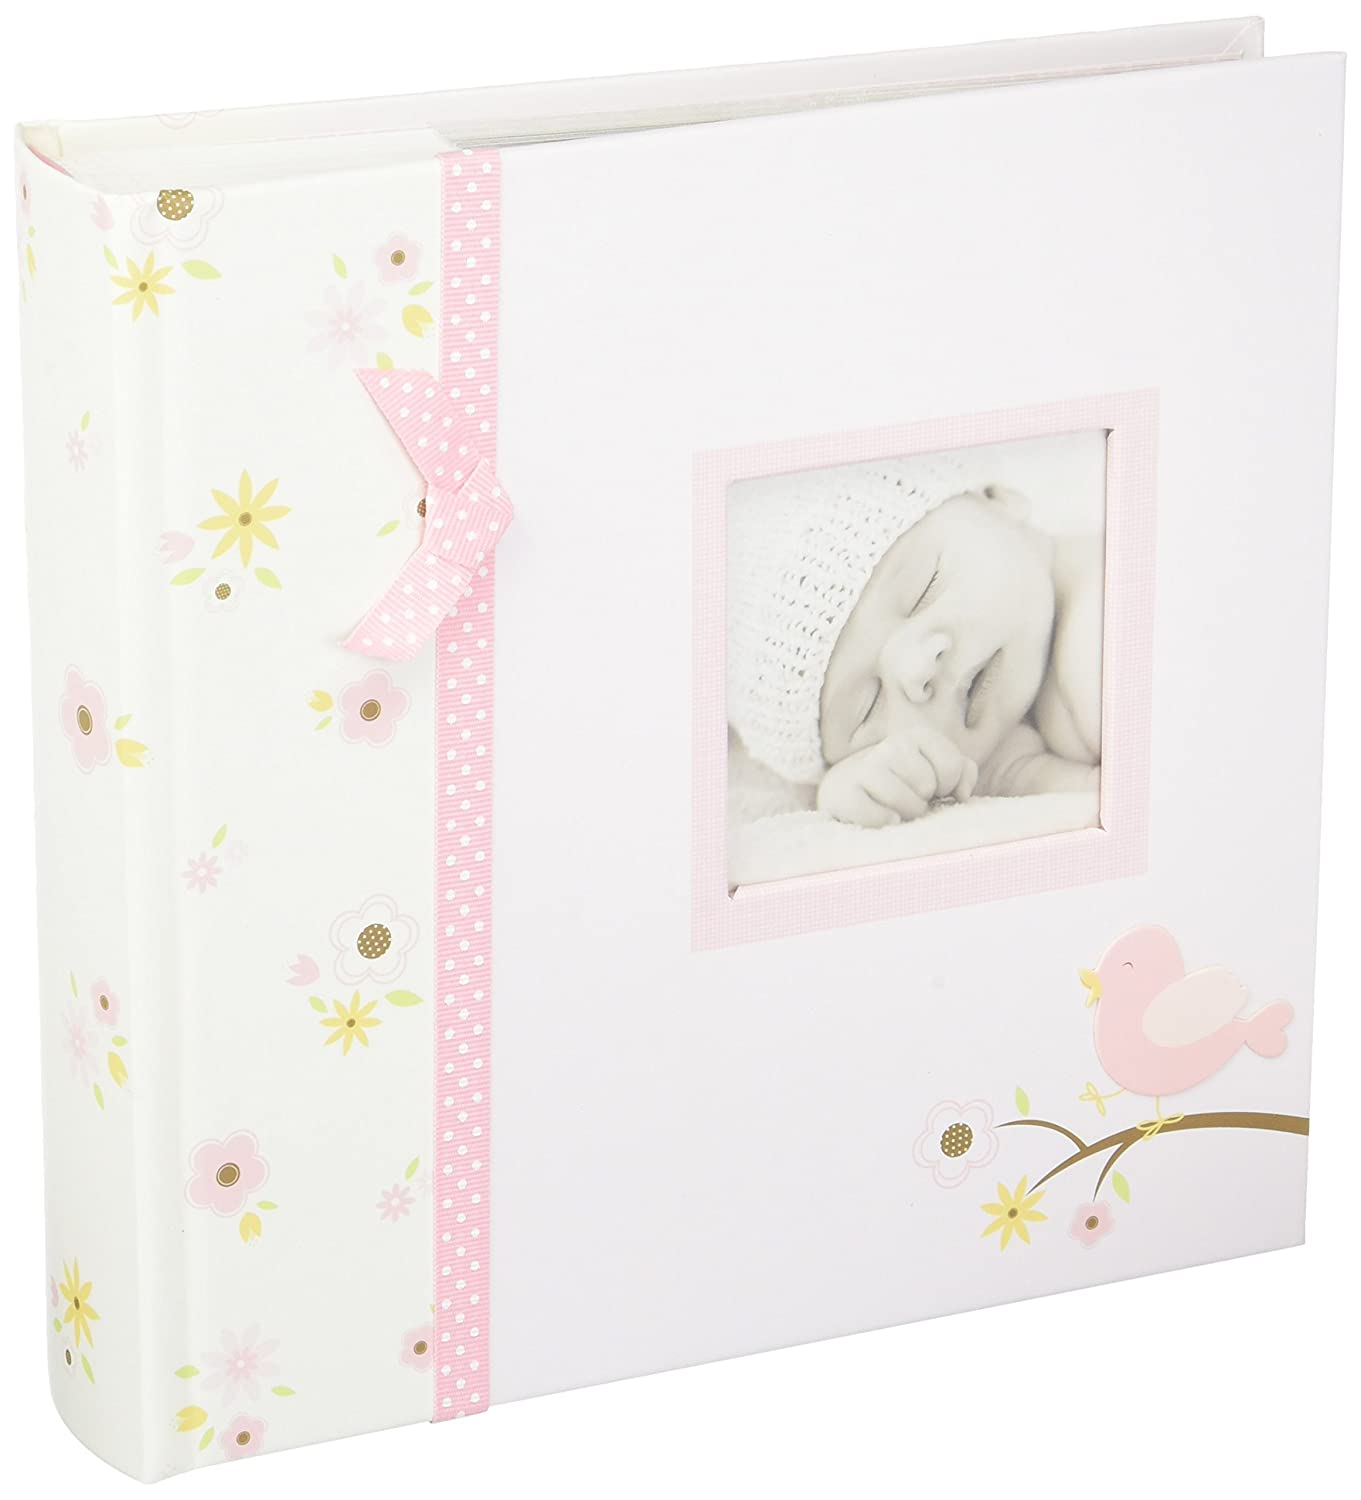 Lil Peach Baby Photo Album Holds 200 4 x 6 Pictures, Pink Bird 92162